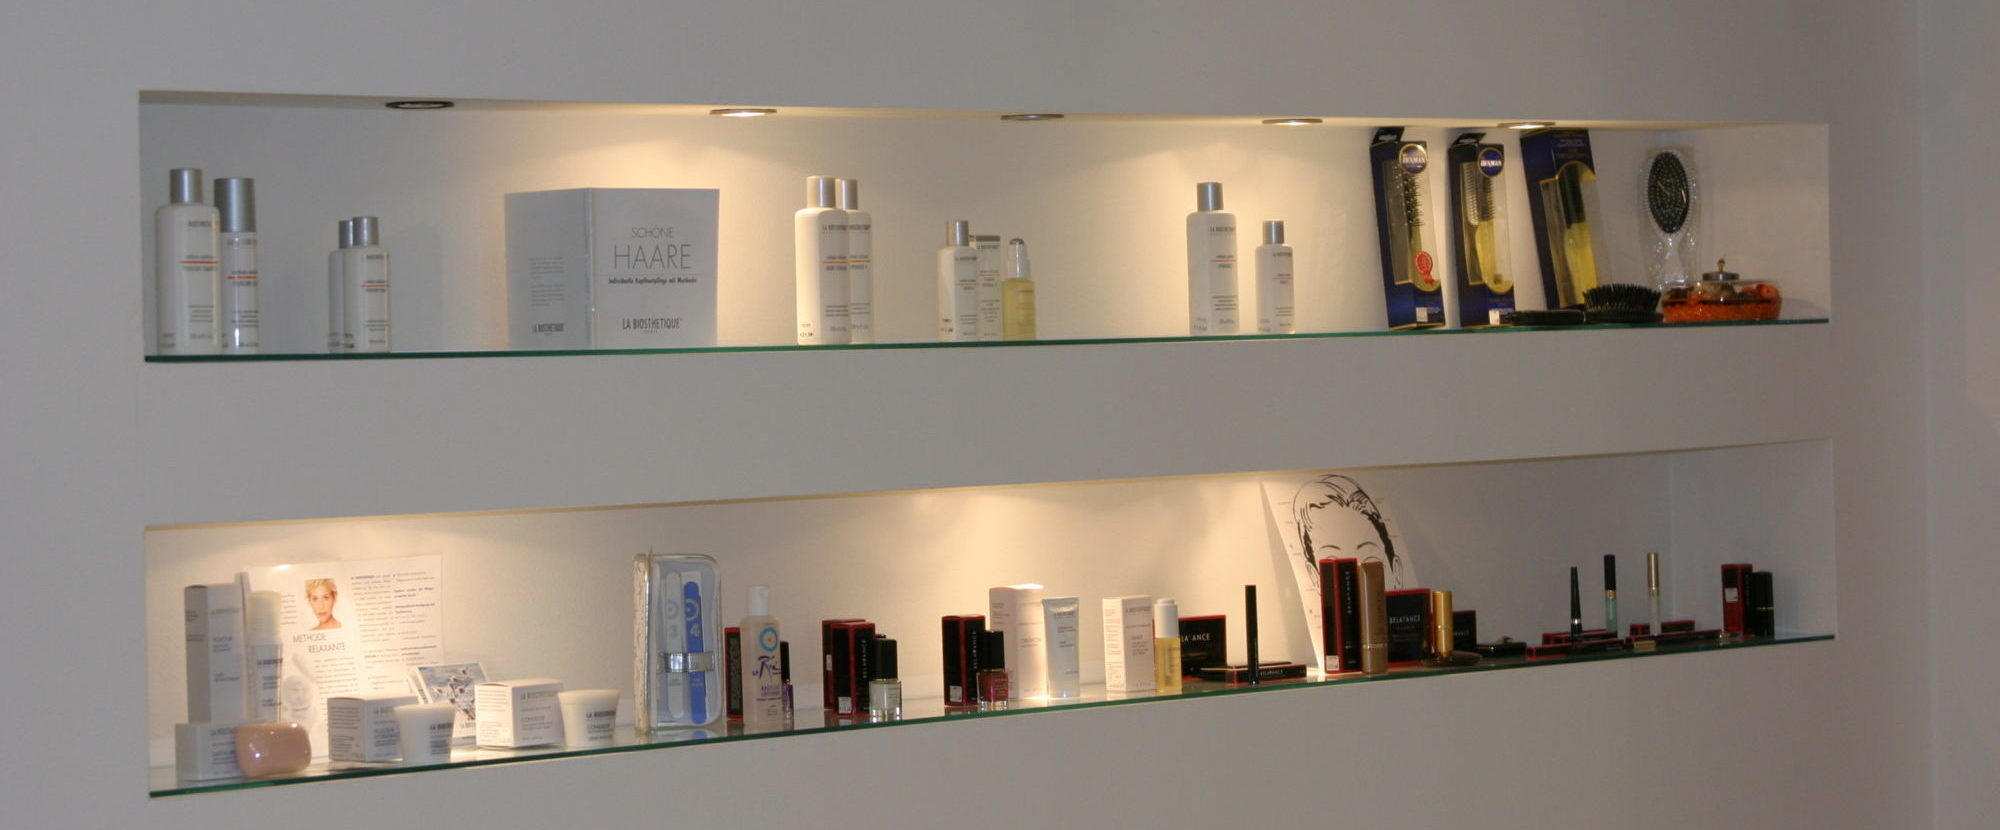 Salon Impression Jost Schmitz Headerbild1